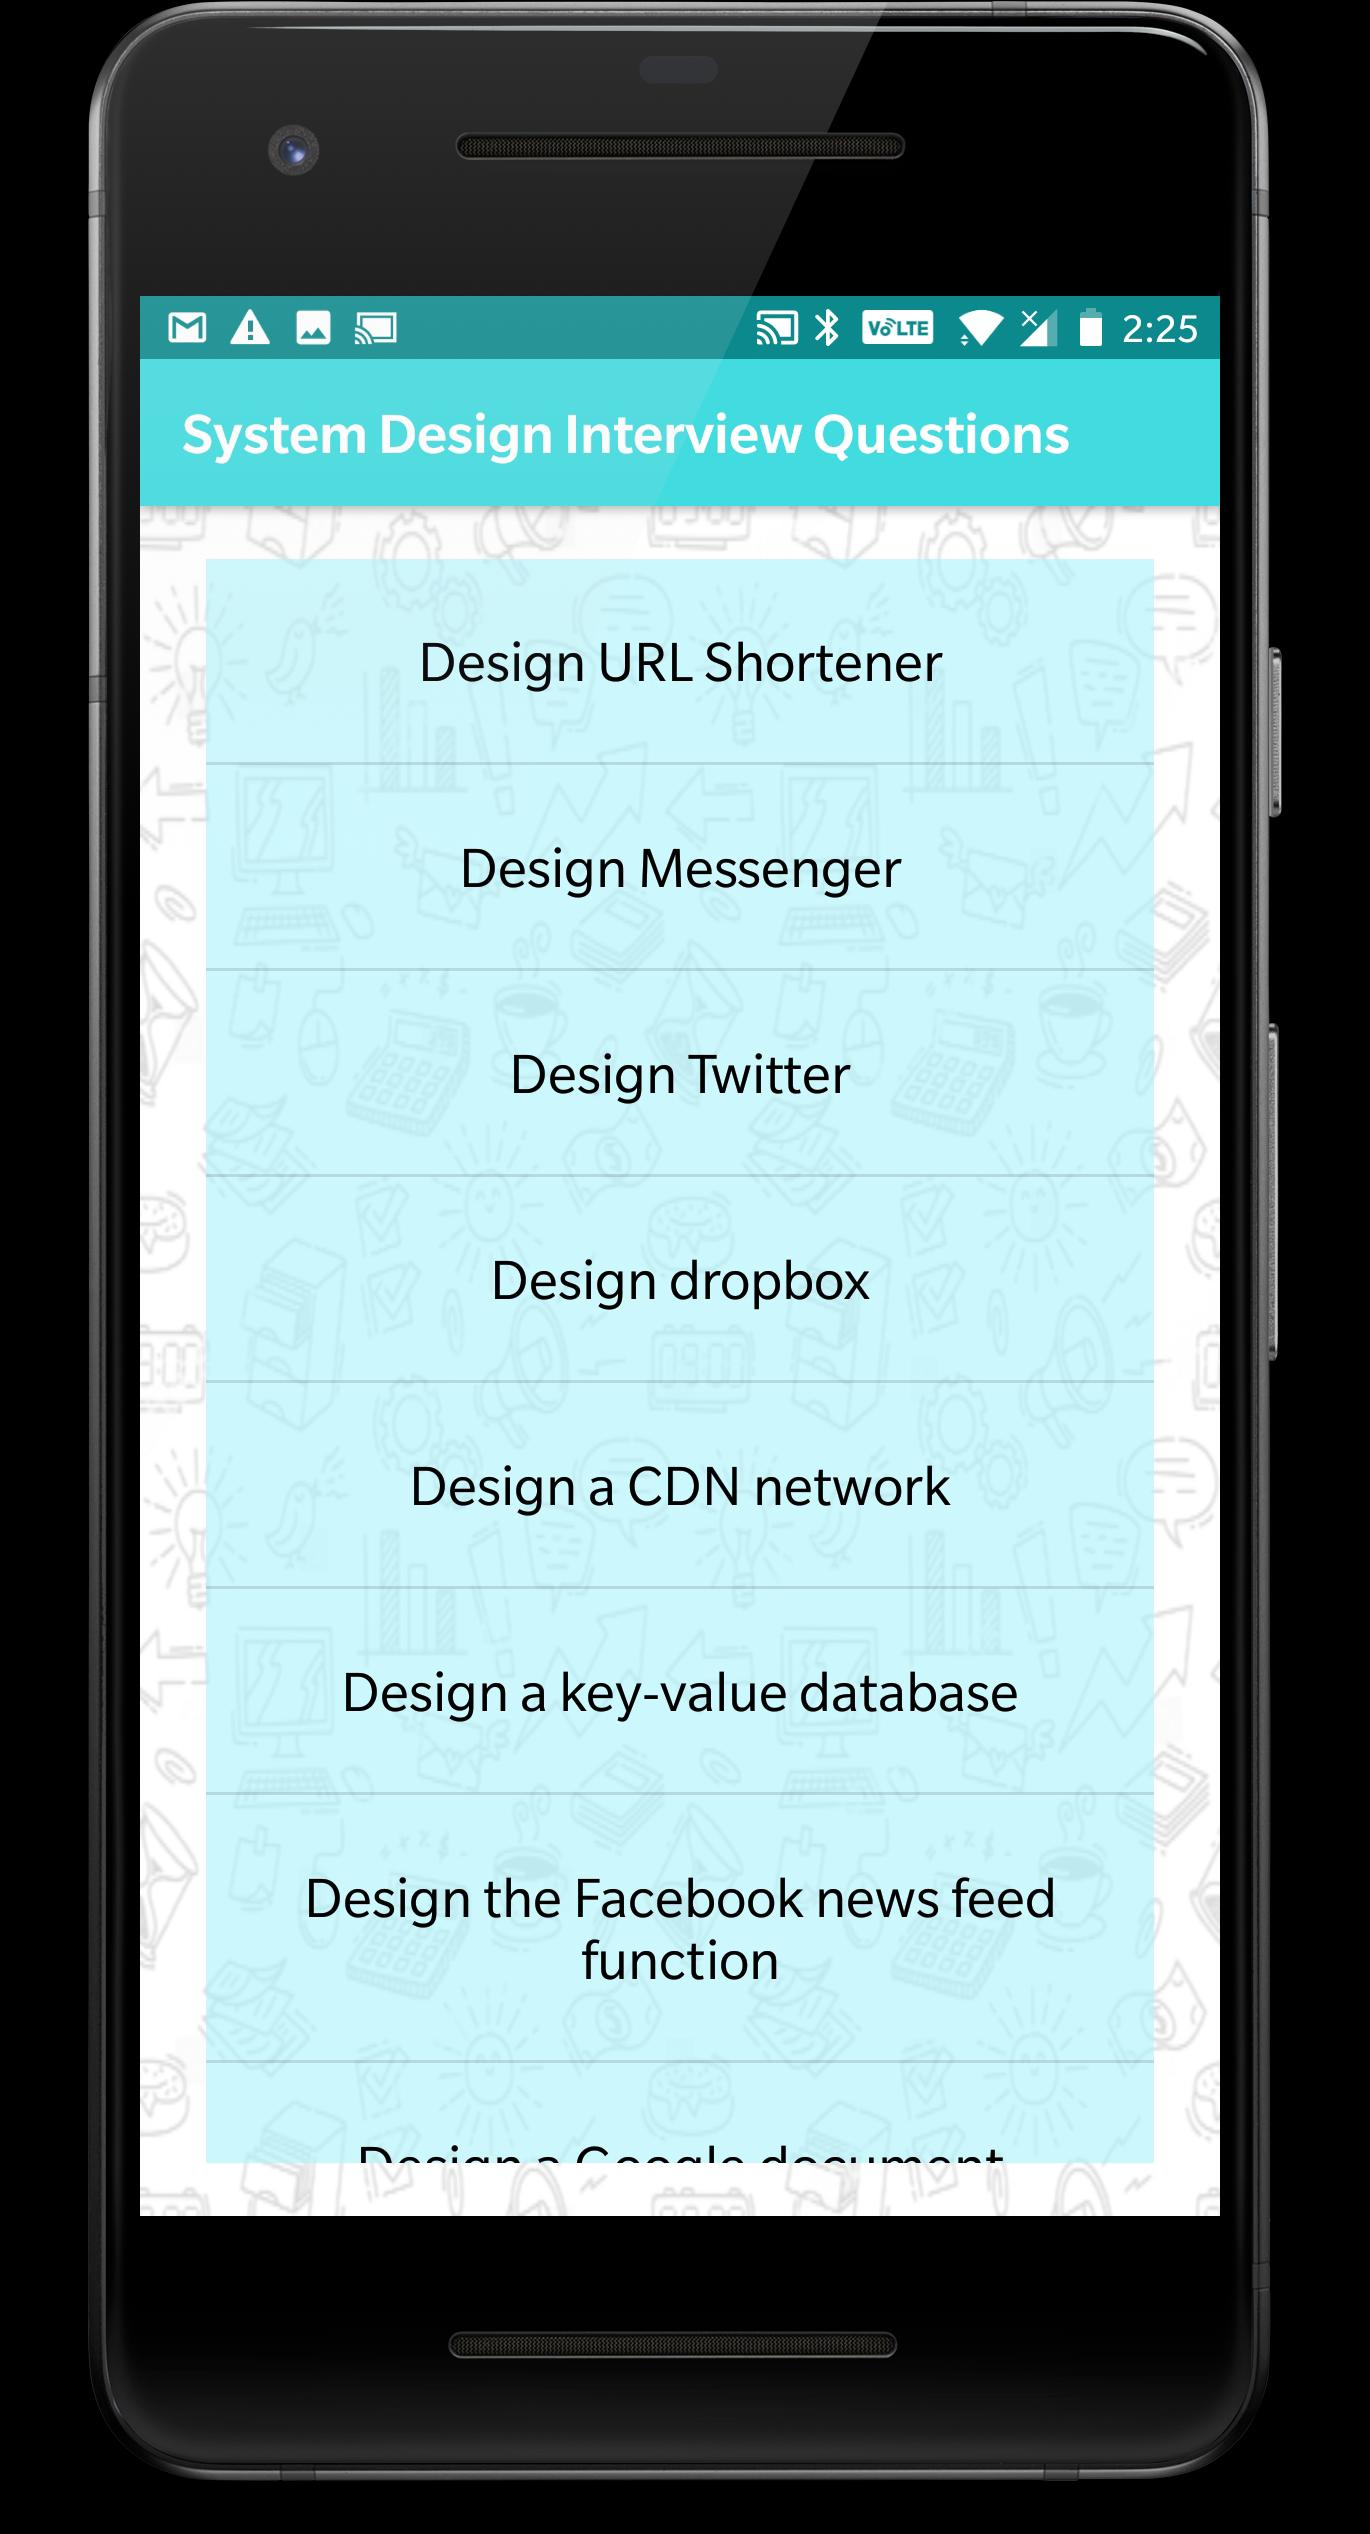 System Design Interview Questions For Android Apk Download